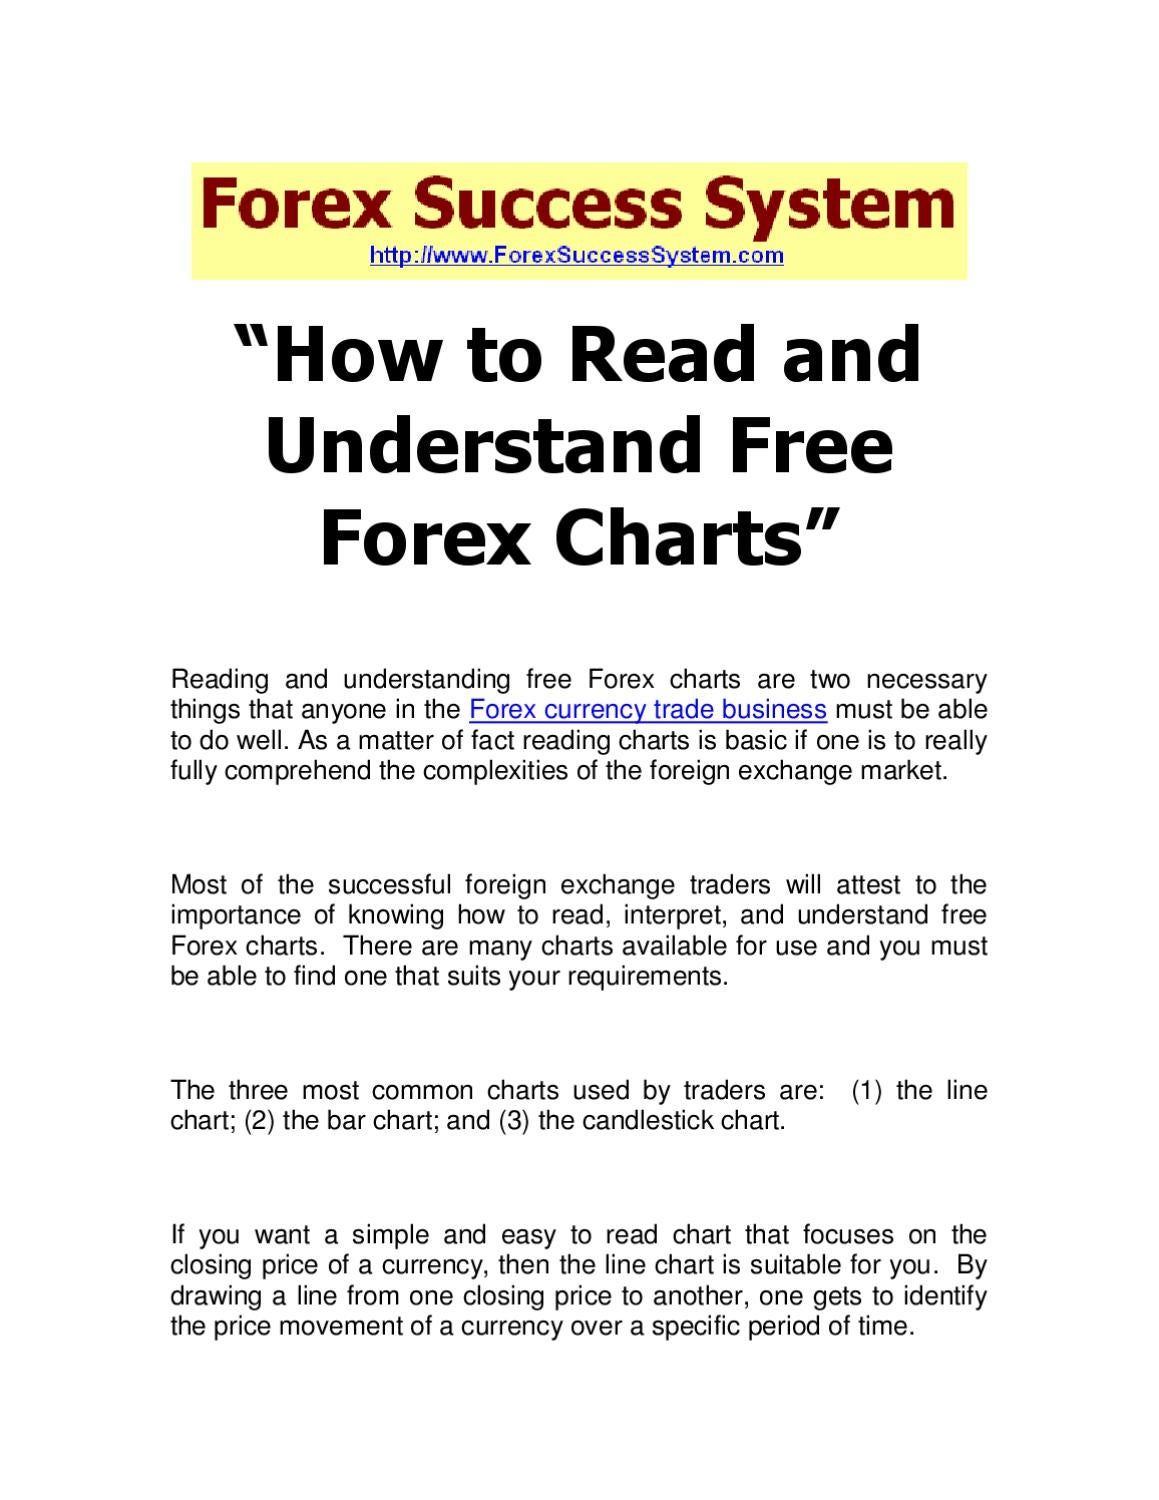 How to read forex